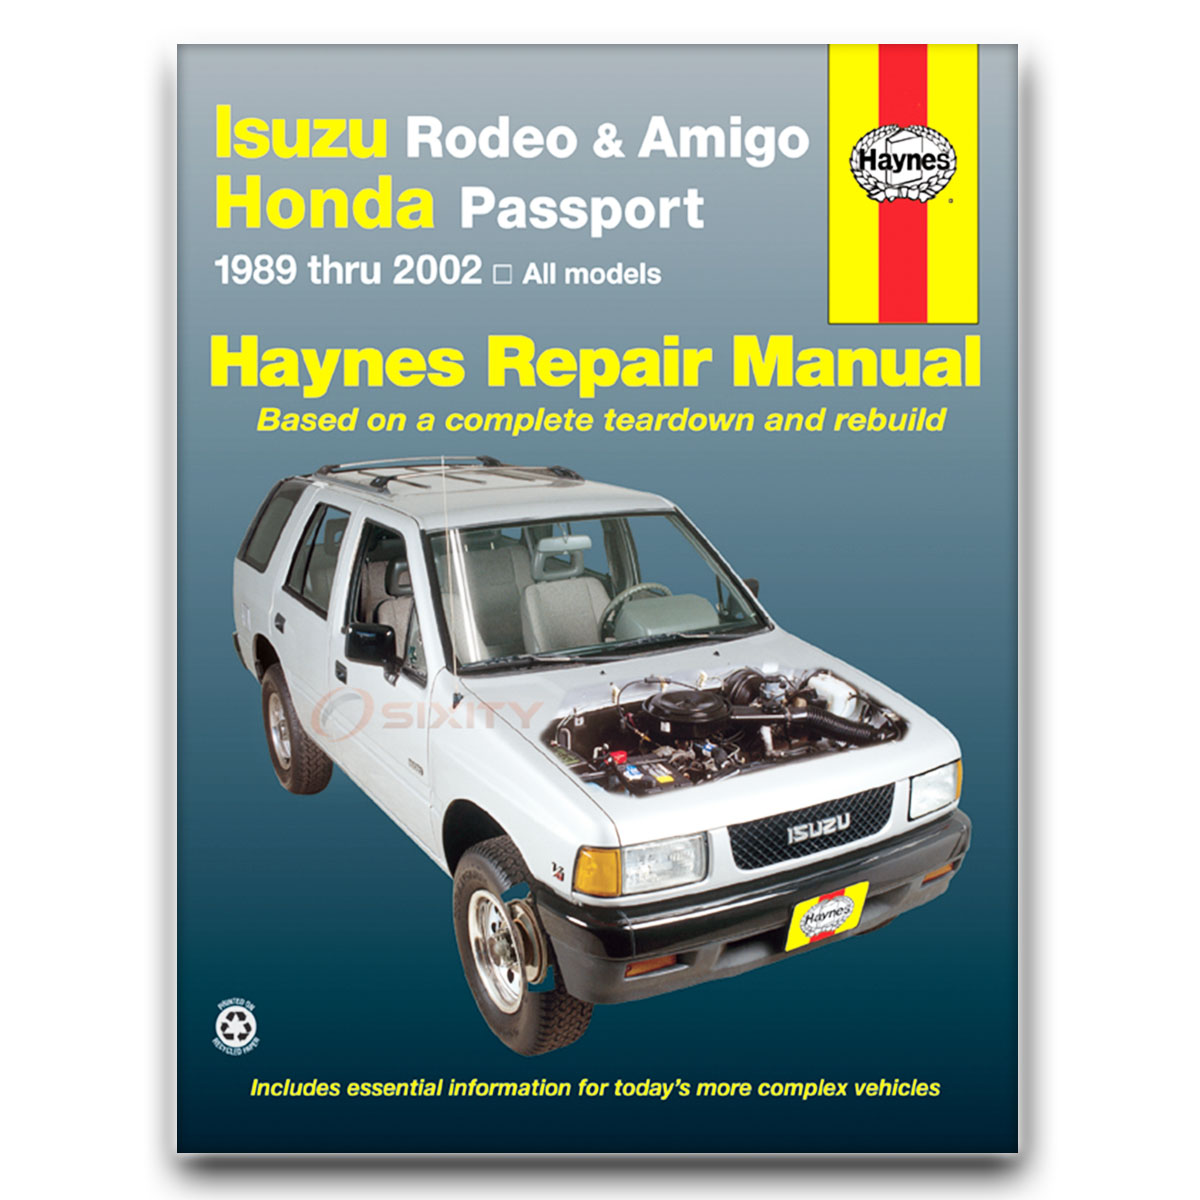 Haynes Repair Manual for Isuzu Rodeo S V6 LS LSE XS Shop Service Garage  Book rq